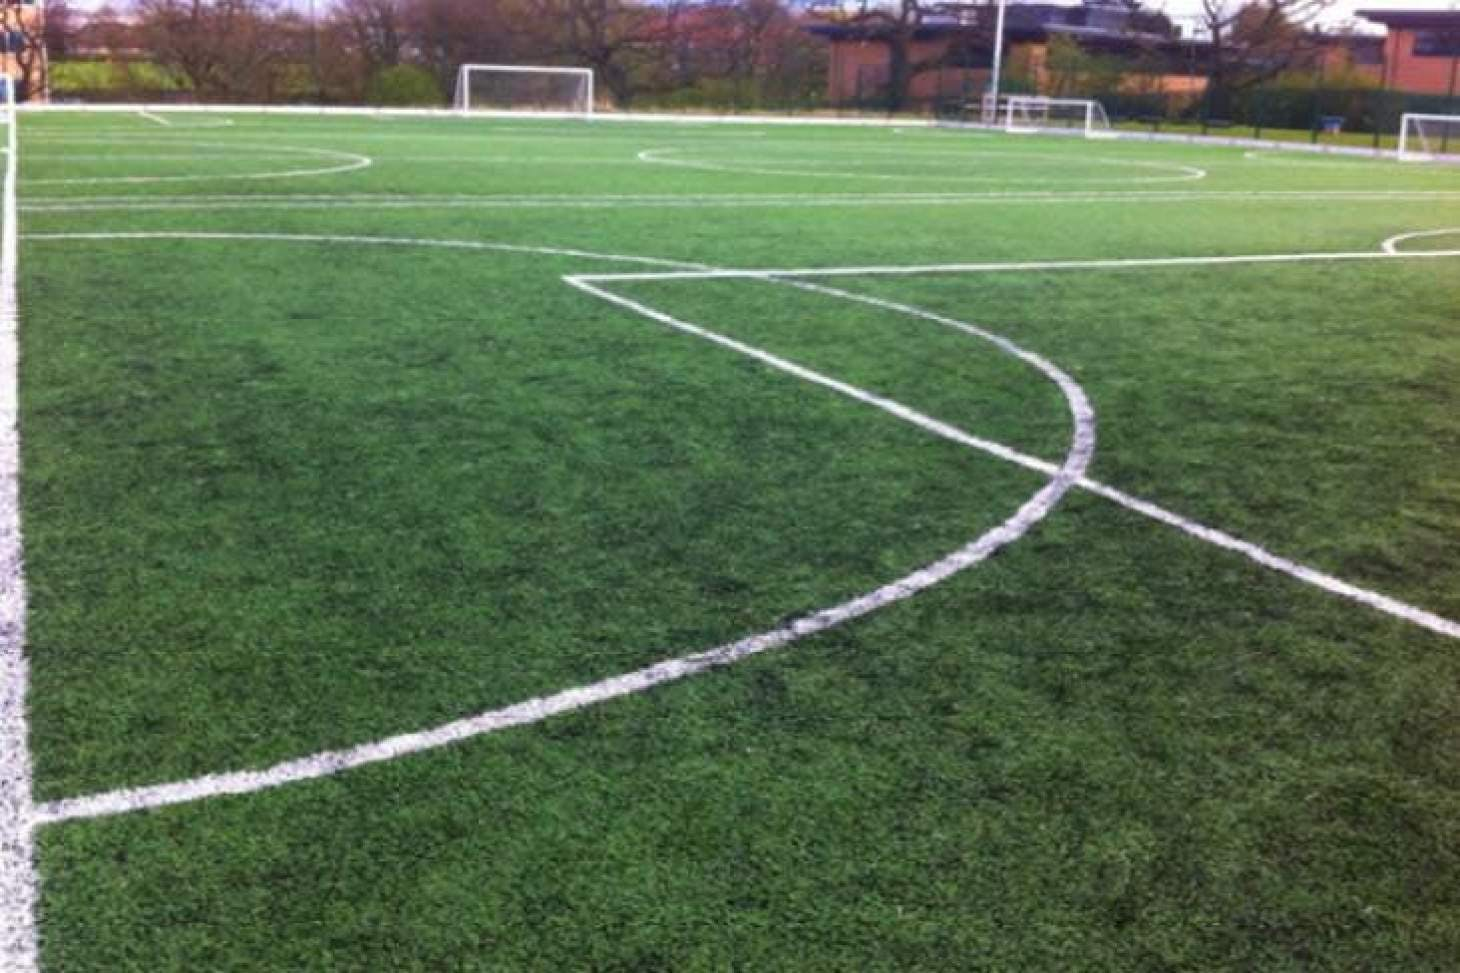 South Manchester Sports Club 5 a side   3G Astroturf football pitch